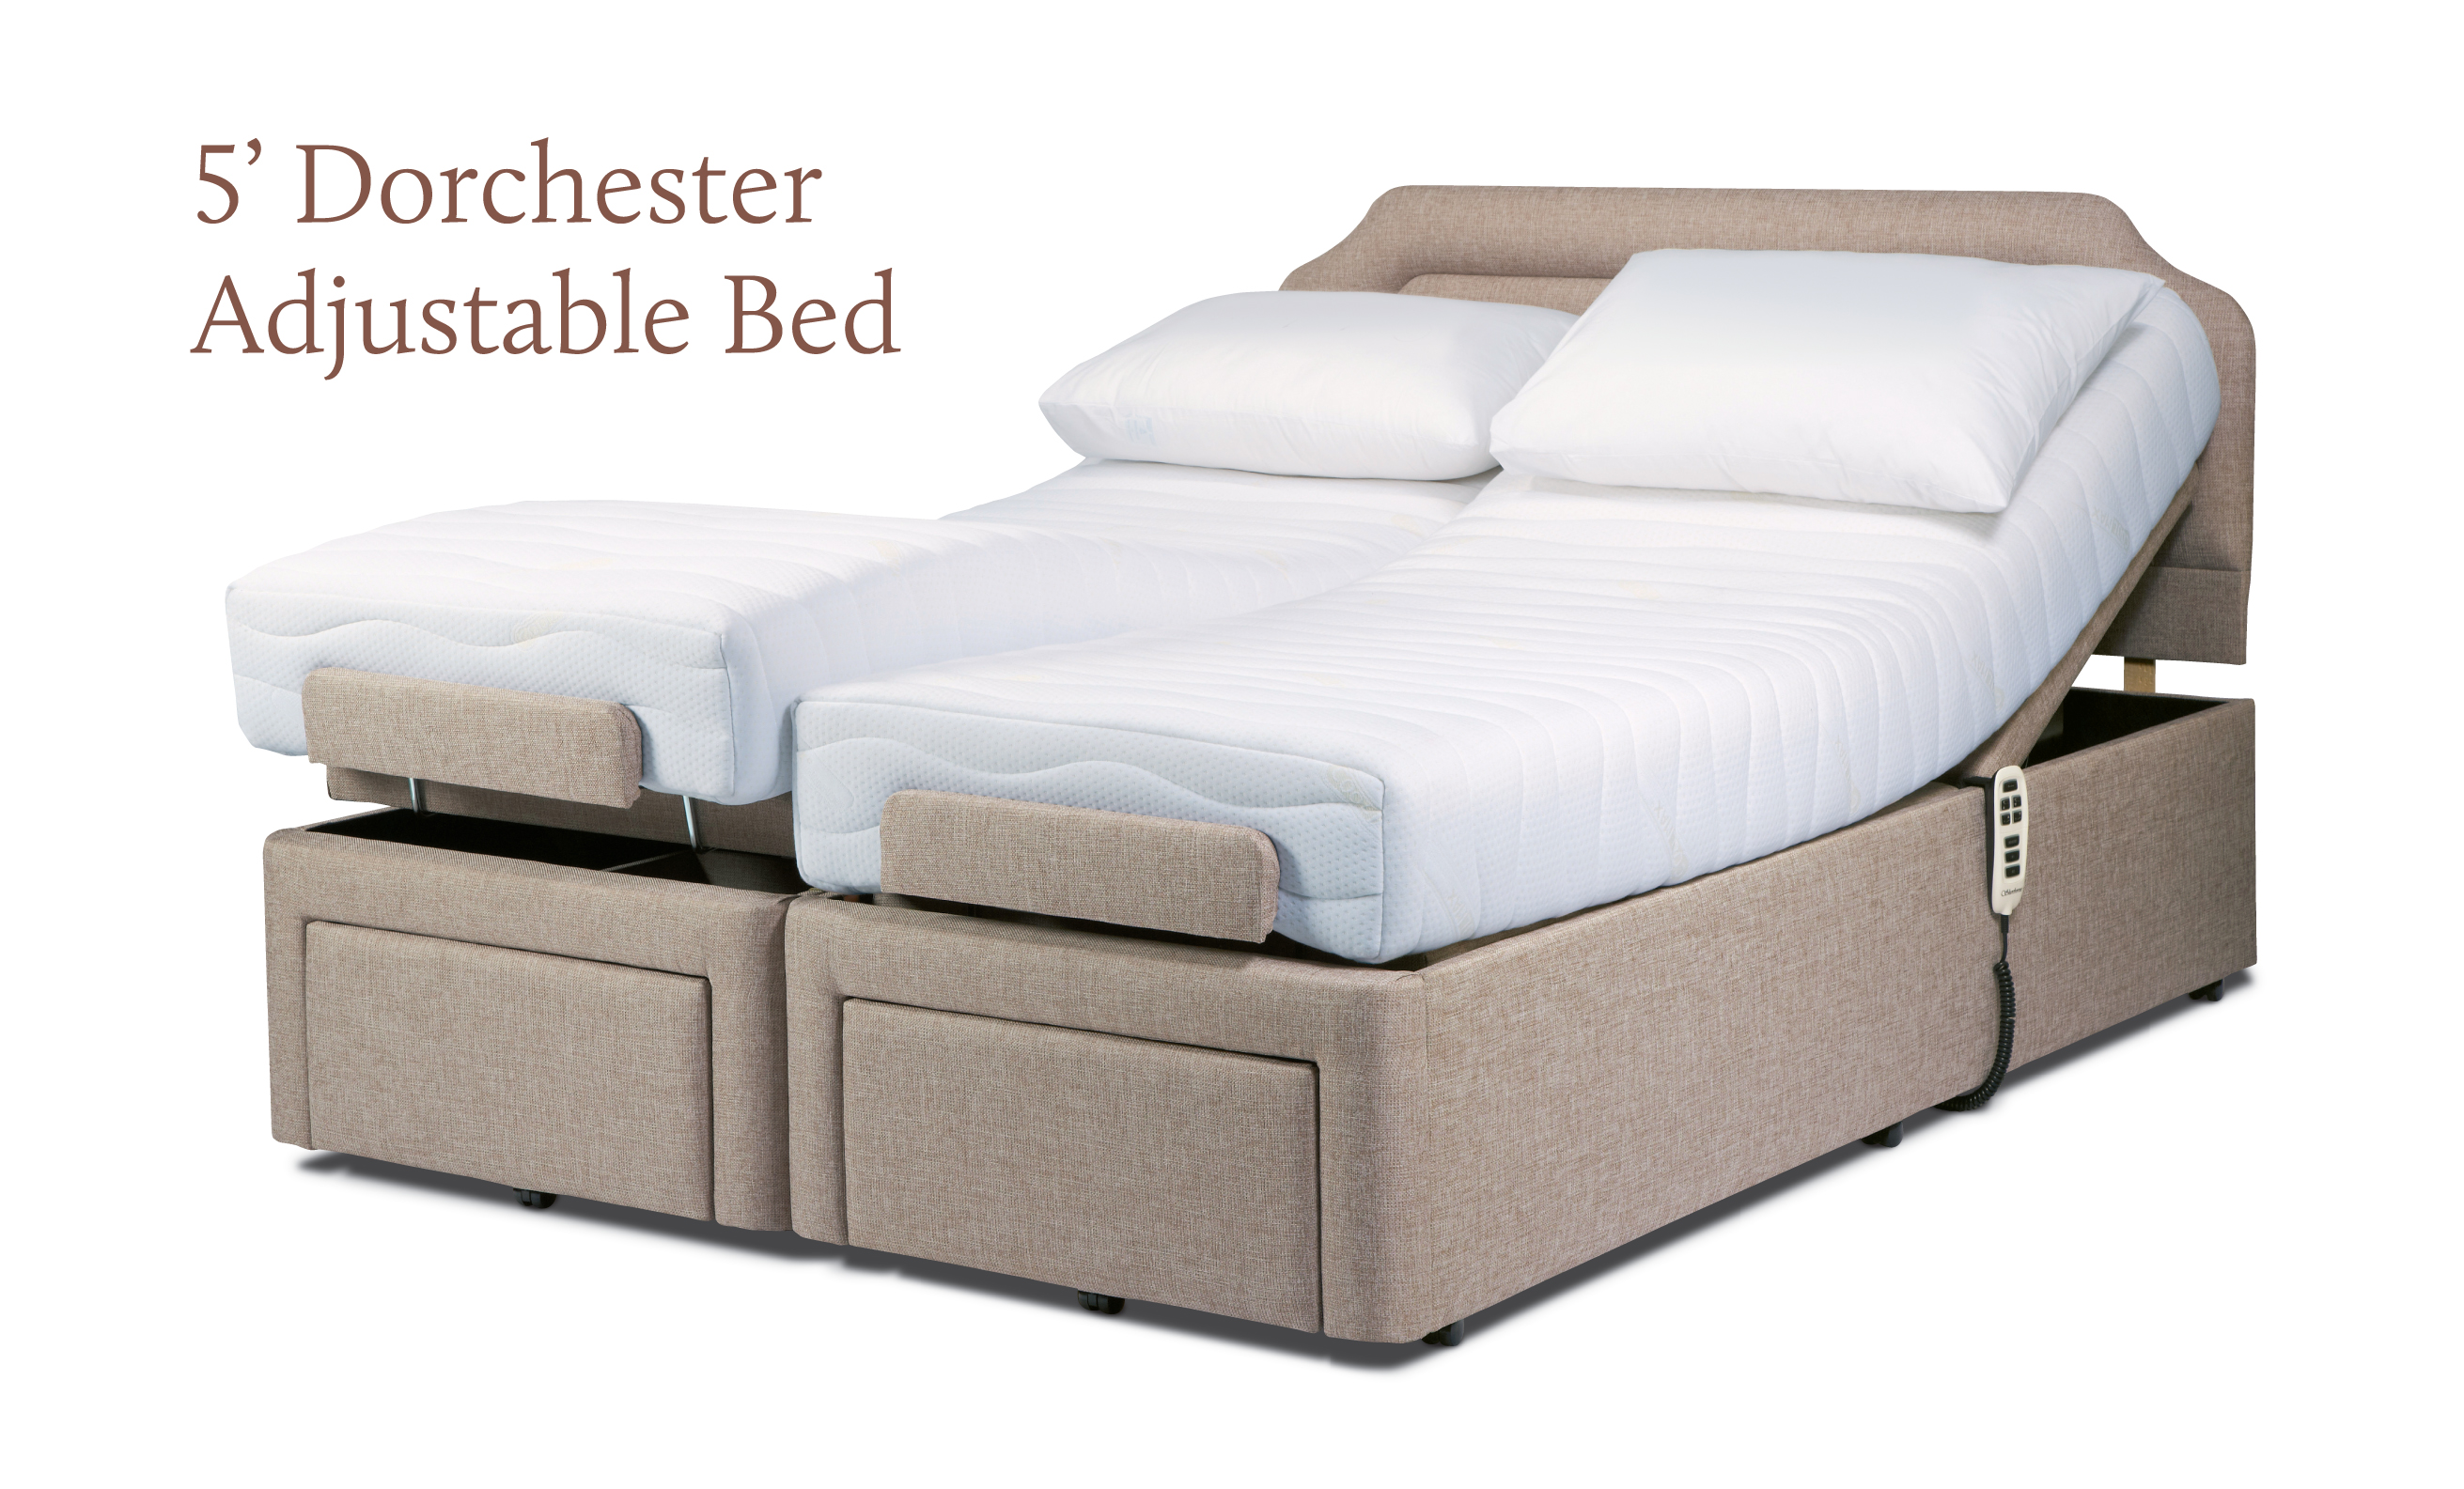 Craftmatic Adjustable Bed Replacement Parts : Craftmatic bed the double regular or fullsize adjustable